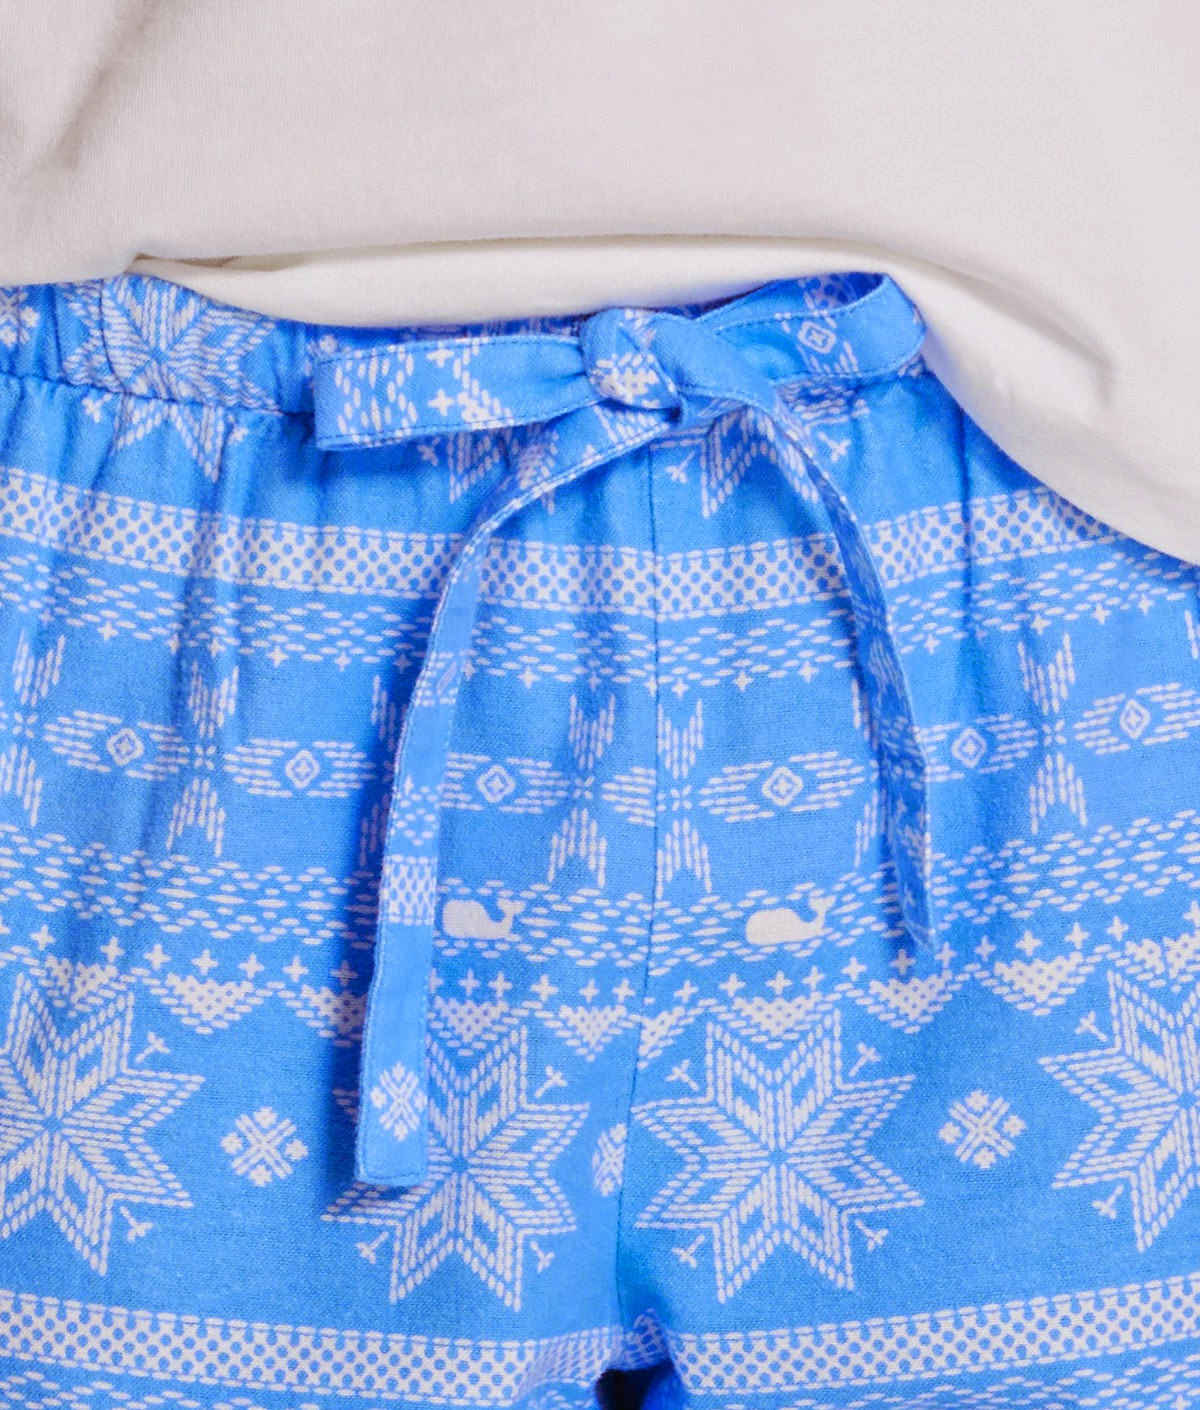 Nautical holiday pajamas from Vineyard Vines